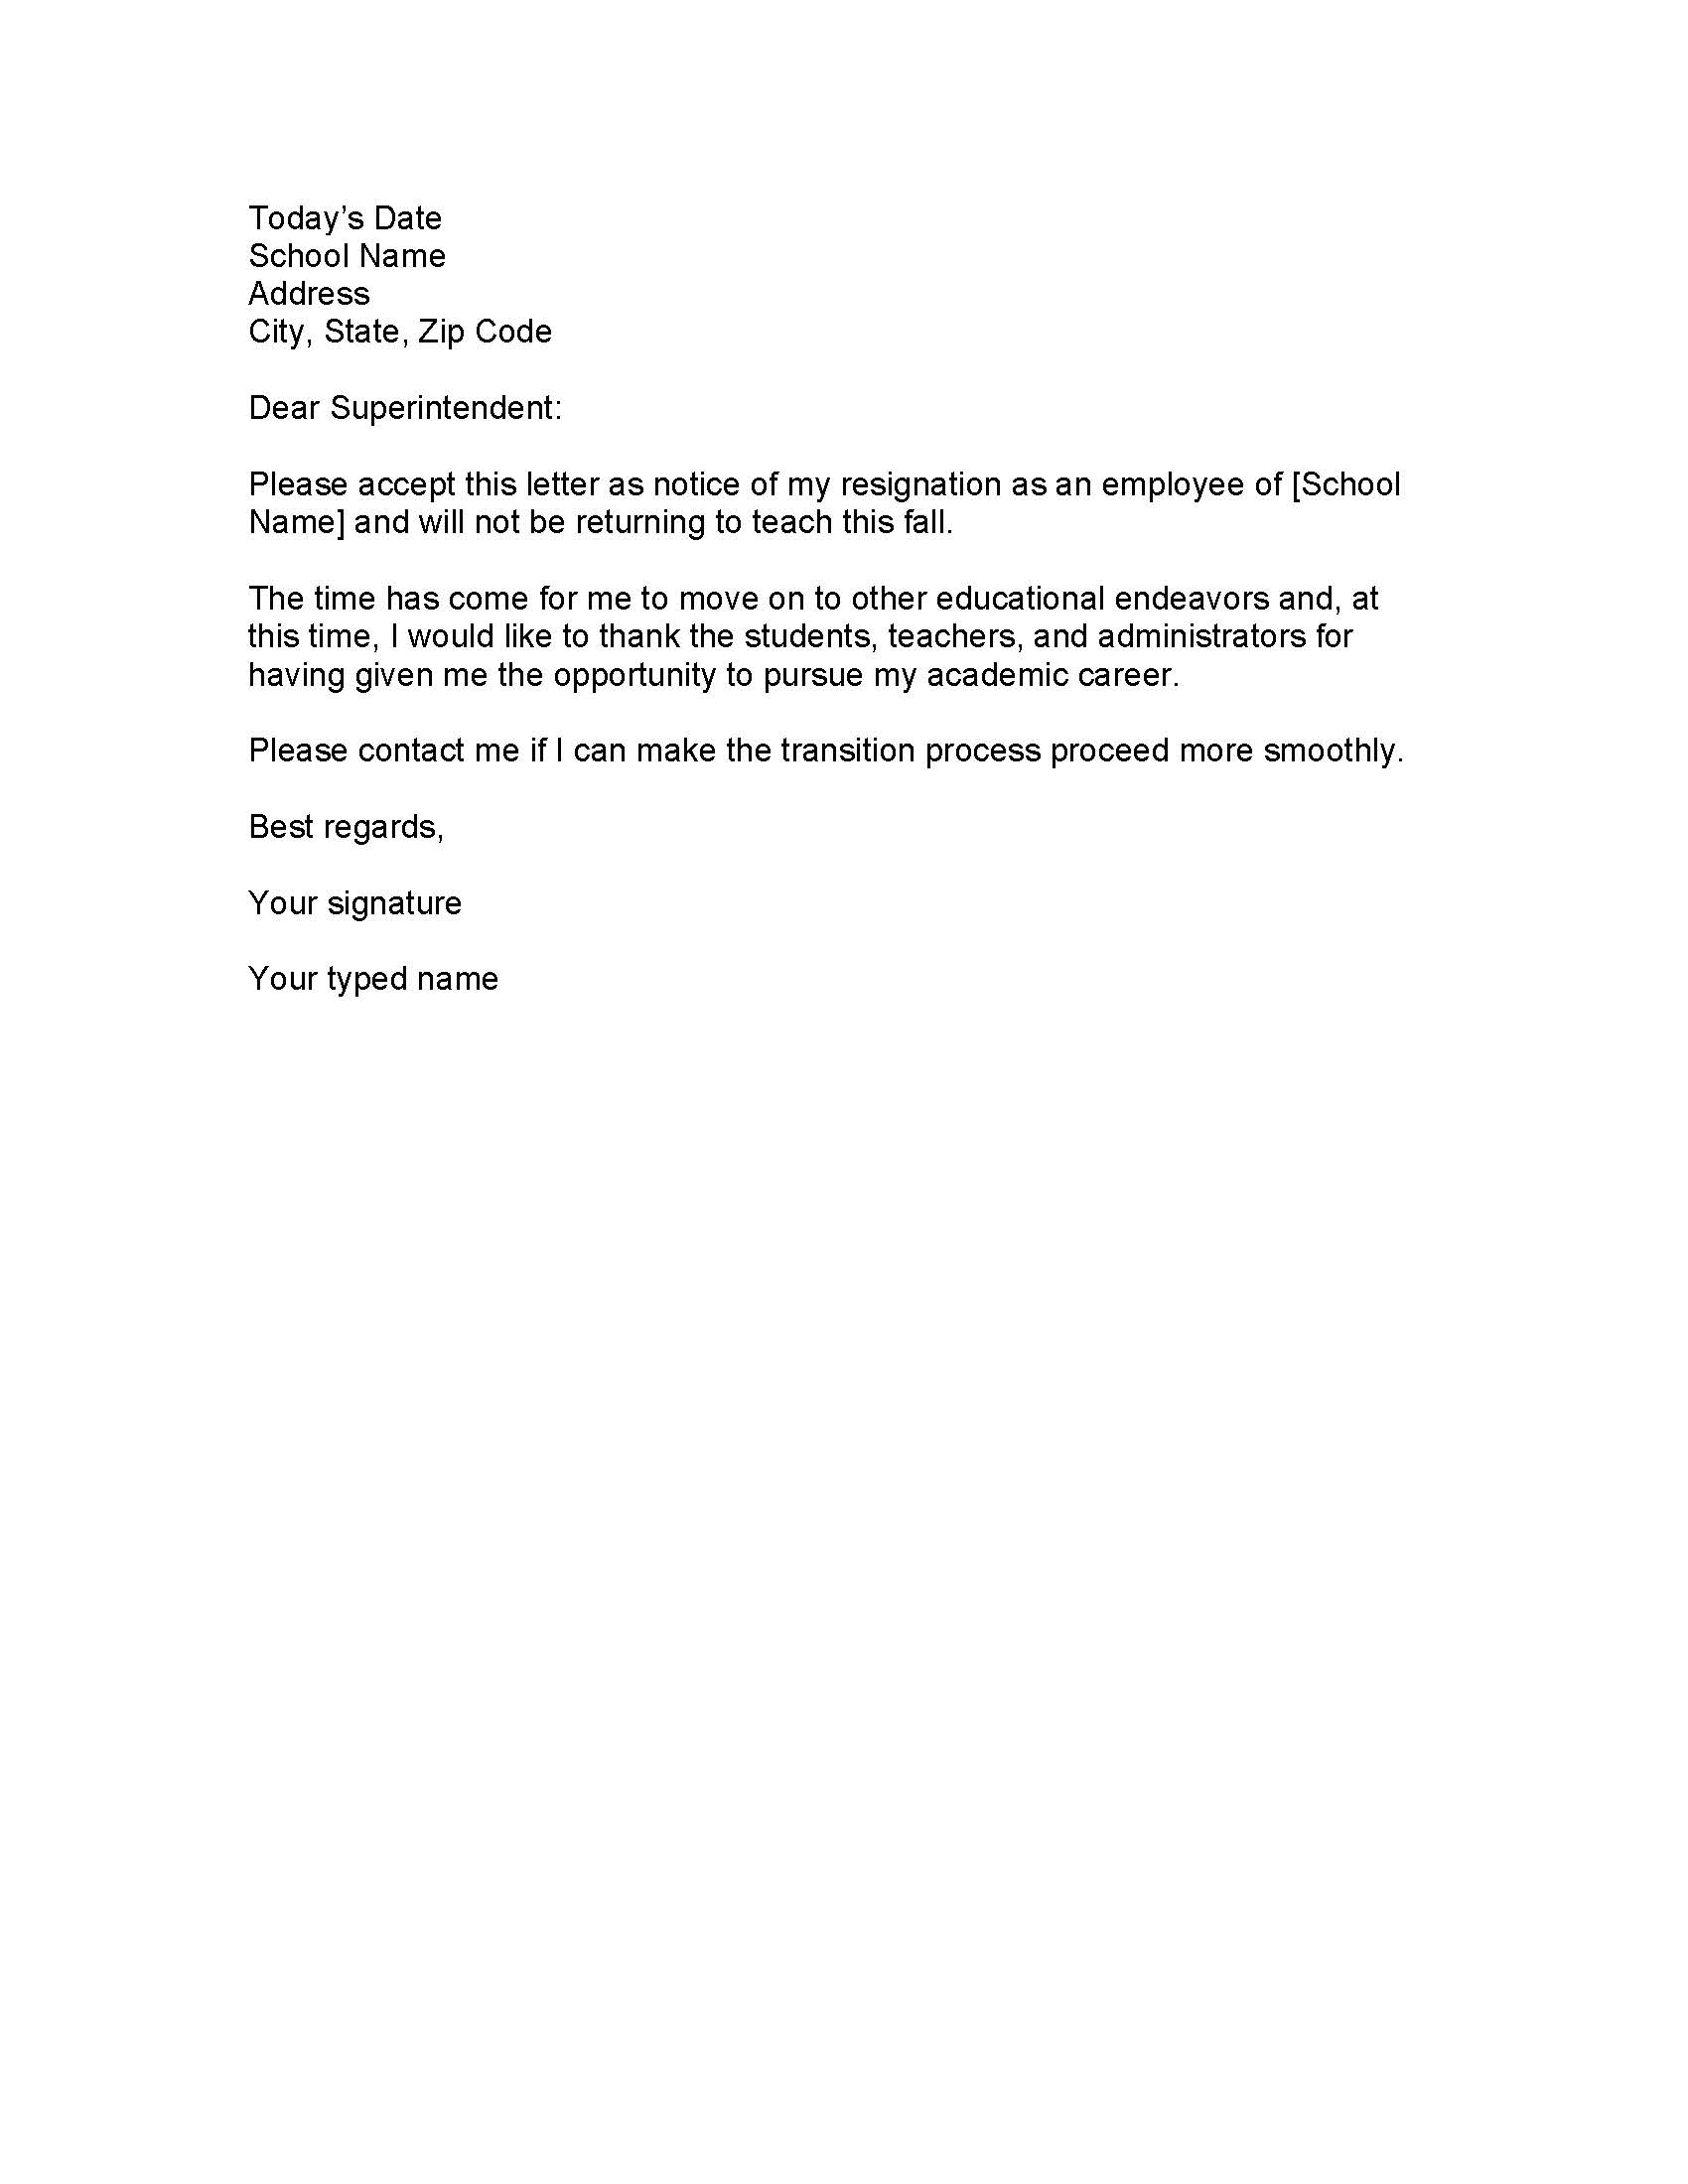 resignation letter examples monster professional resume cover resignation letter examples monster retirement resignation letter example resignation - How To Write A Letter Of Resignation Due To Retirement